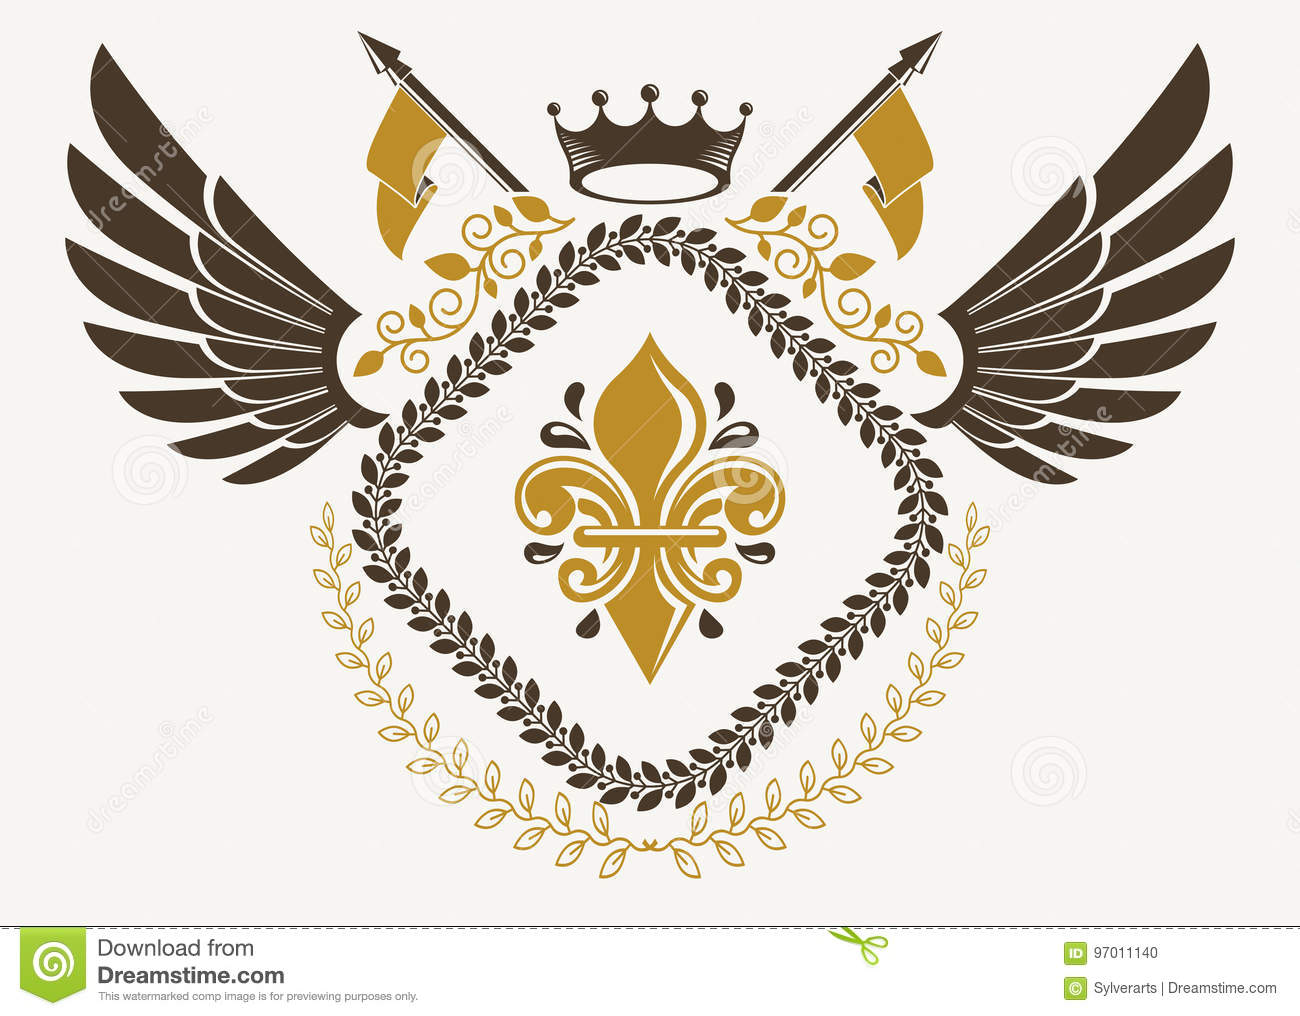 Vintage winged emblem created in vector heraldic design and comp vintage winged emblem created in vector heraldic design and composed using lily flower symbol and imperial crown izmirmasajfo